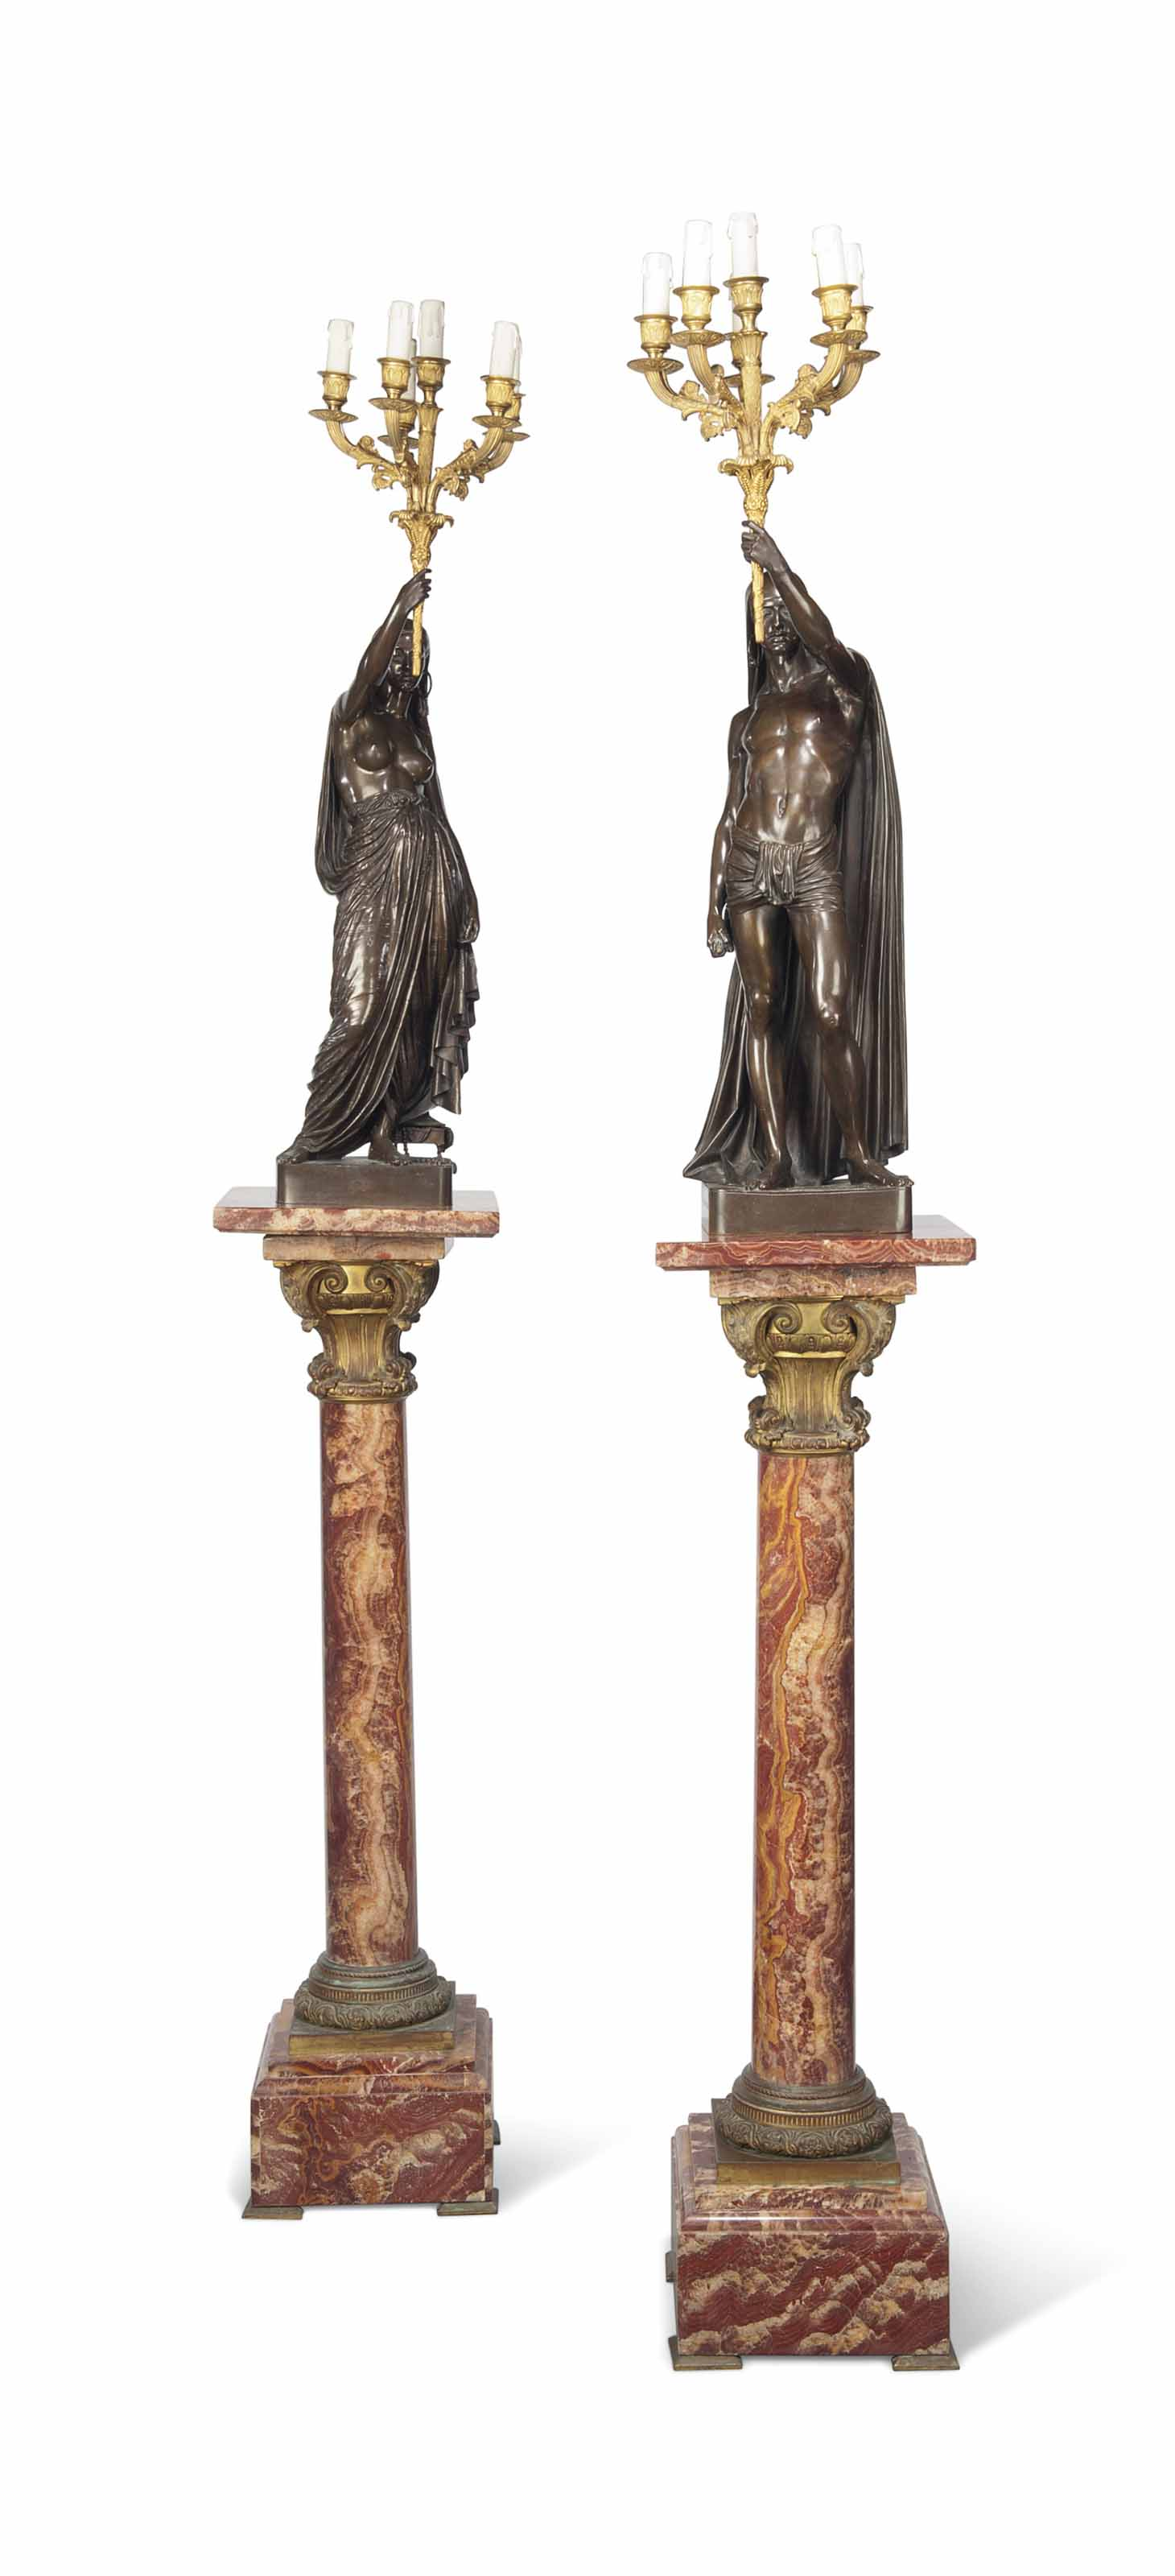 A PAIR OF FRENCH PATINATED-BRONZE FIGURAL TORCHERES TITLED 'UN ESCLAVE INDIEN PORTANT UNE TORCHE' AND 'UNE ESCLAVE INDIENNE PORTANT UNE TORCHE', ON ORMOLU-MOUNTED ALABASTER PEDESTALS